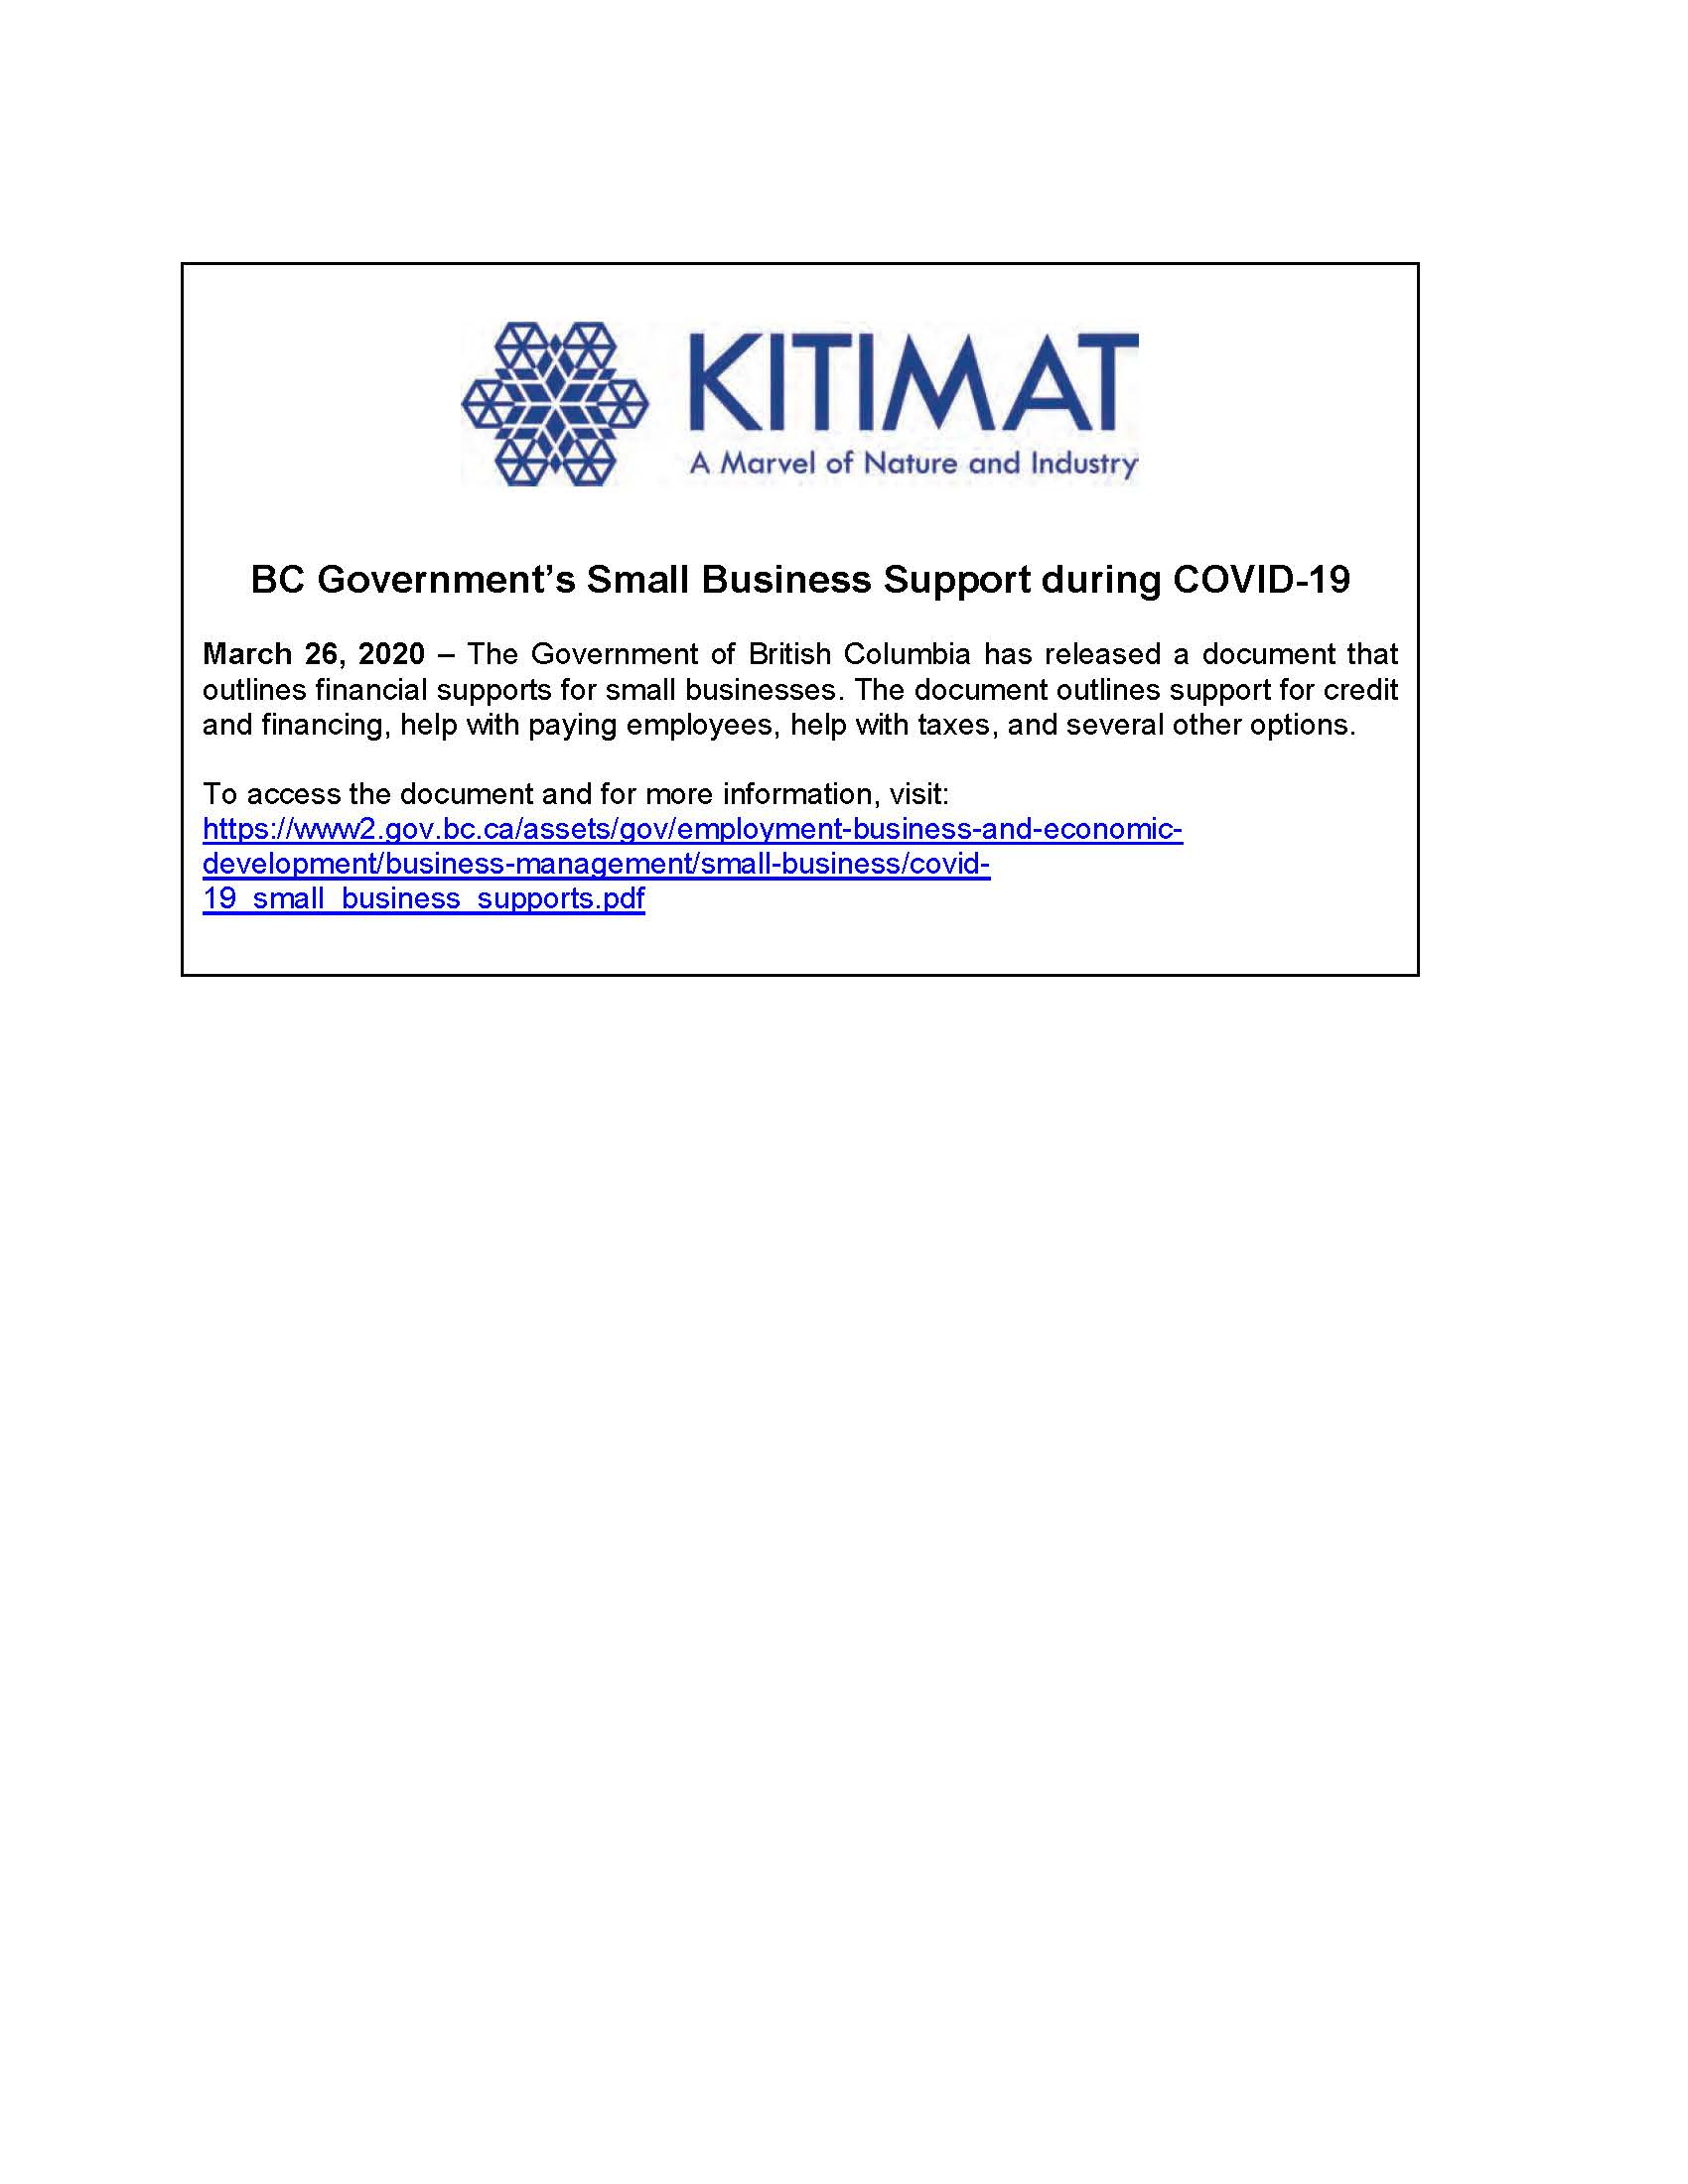 BC Government's Small Business Support During COVID-19